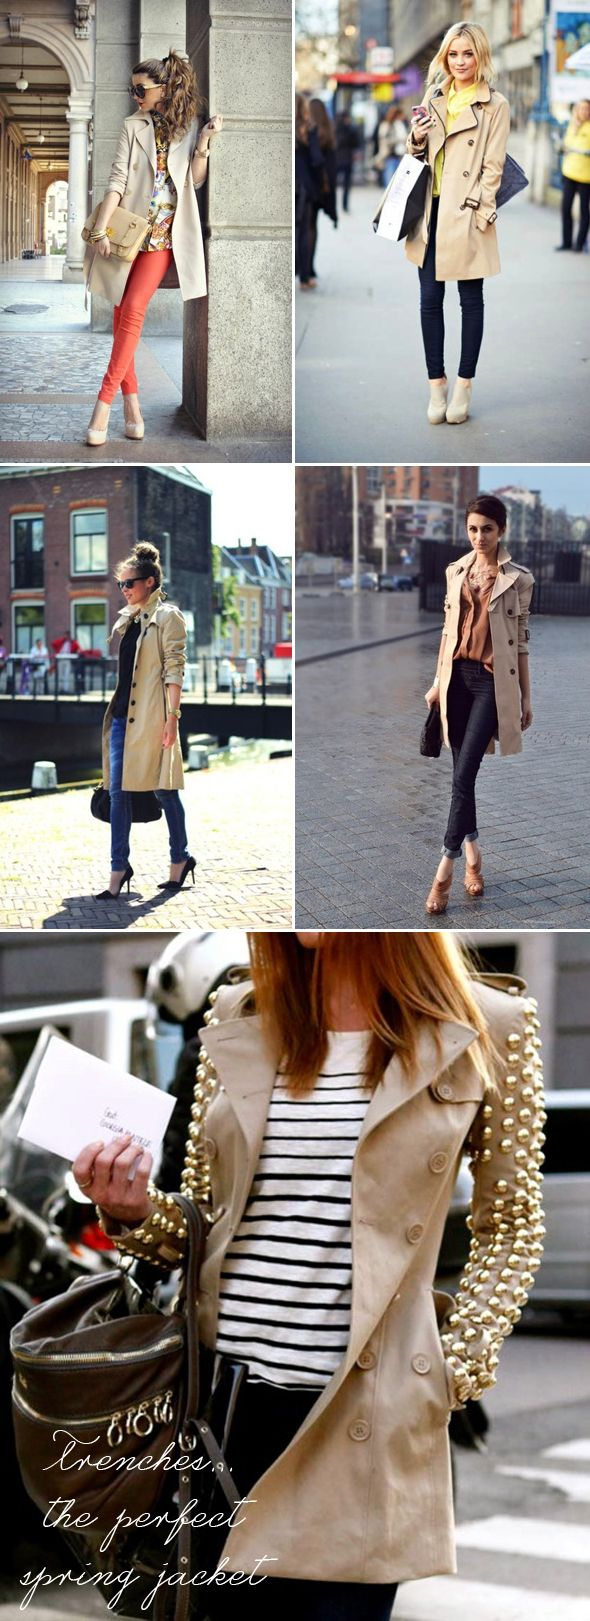 Trenches for spring - Fashion Inspiration | The Style Umbrella - Inspiration for Stylish Living